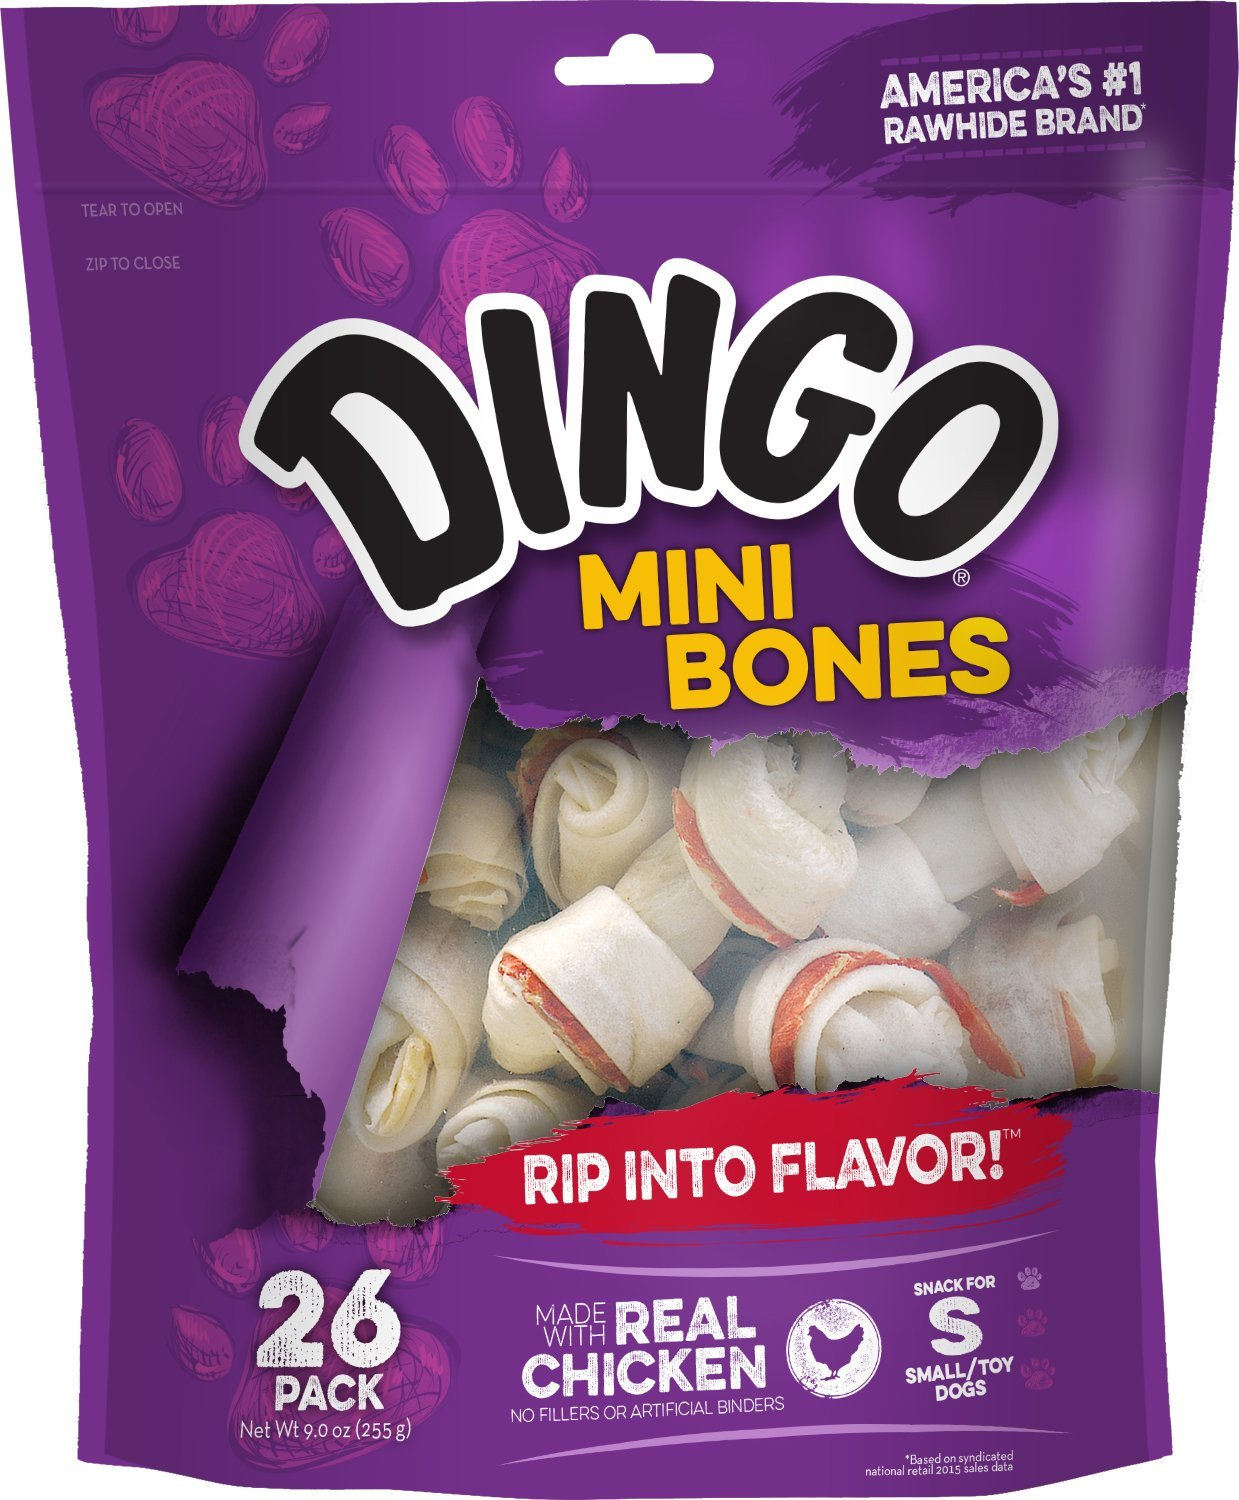 Dingo Mini Bones Rawhide Chews Dogs With Real Chicken, 26 Count